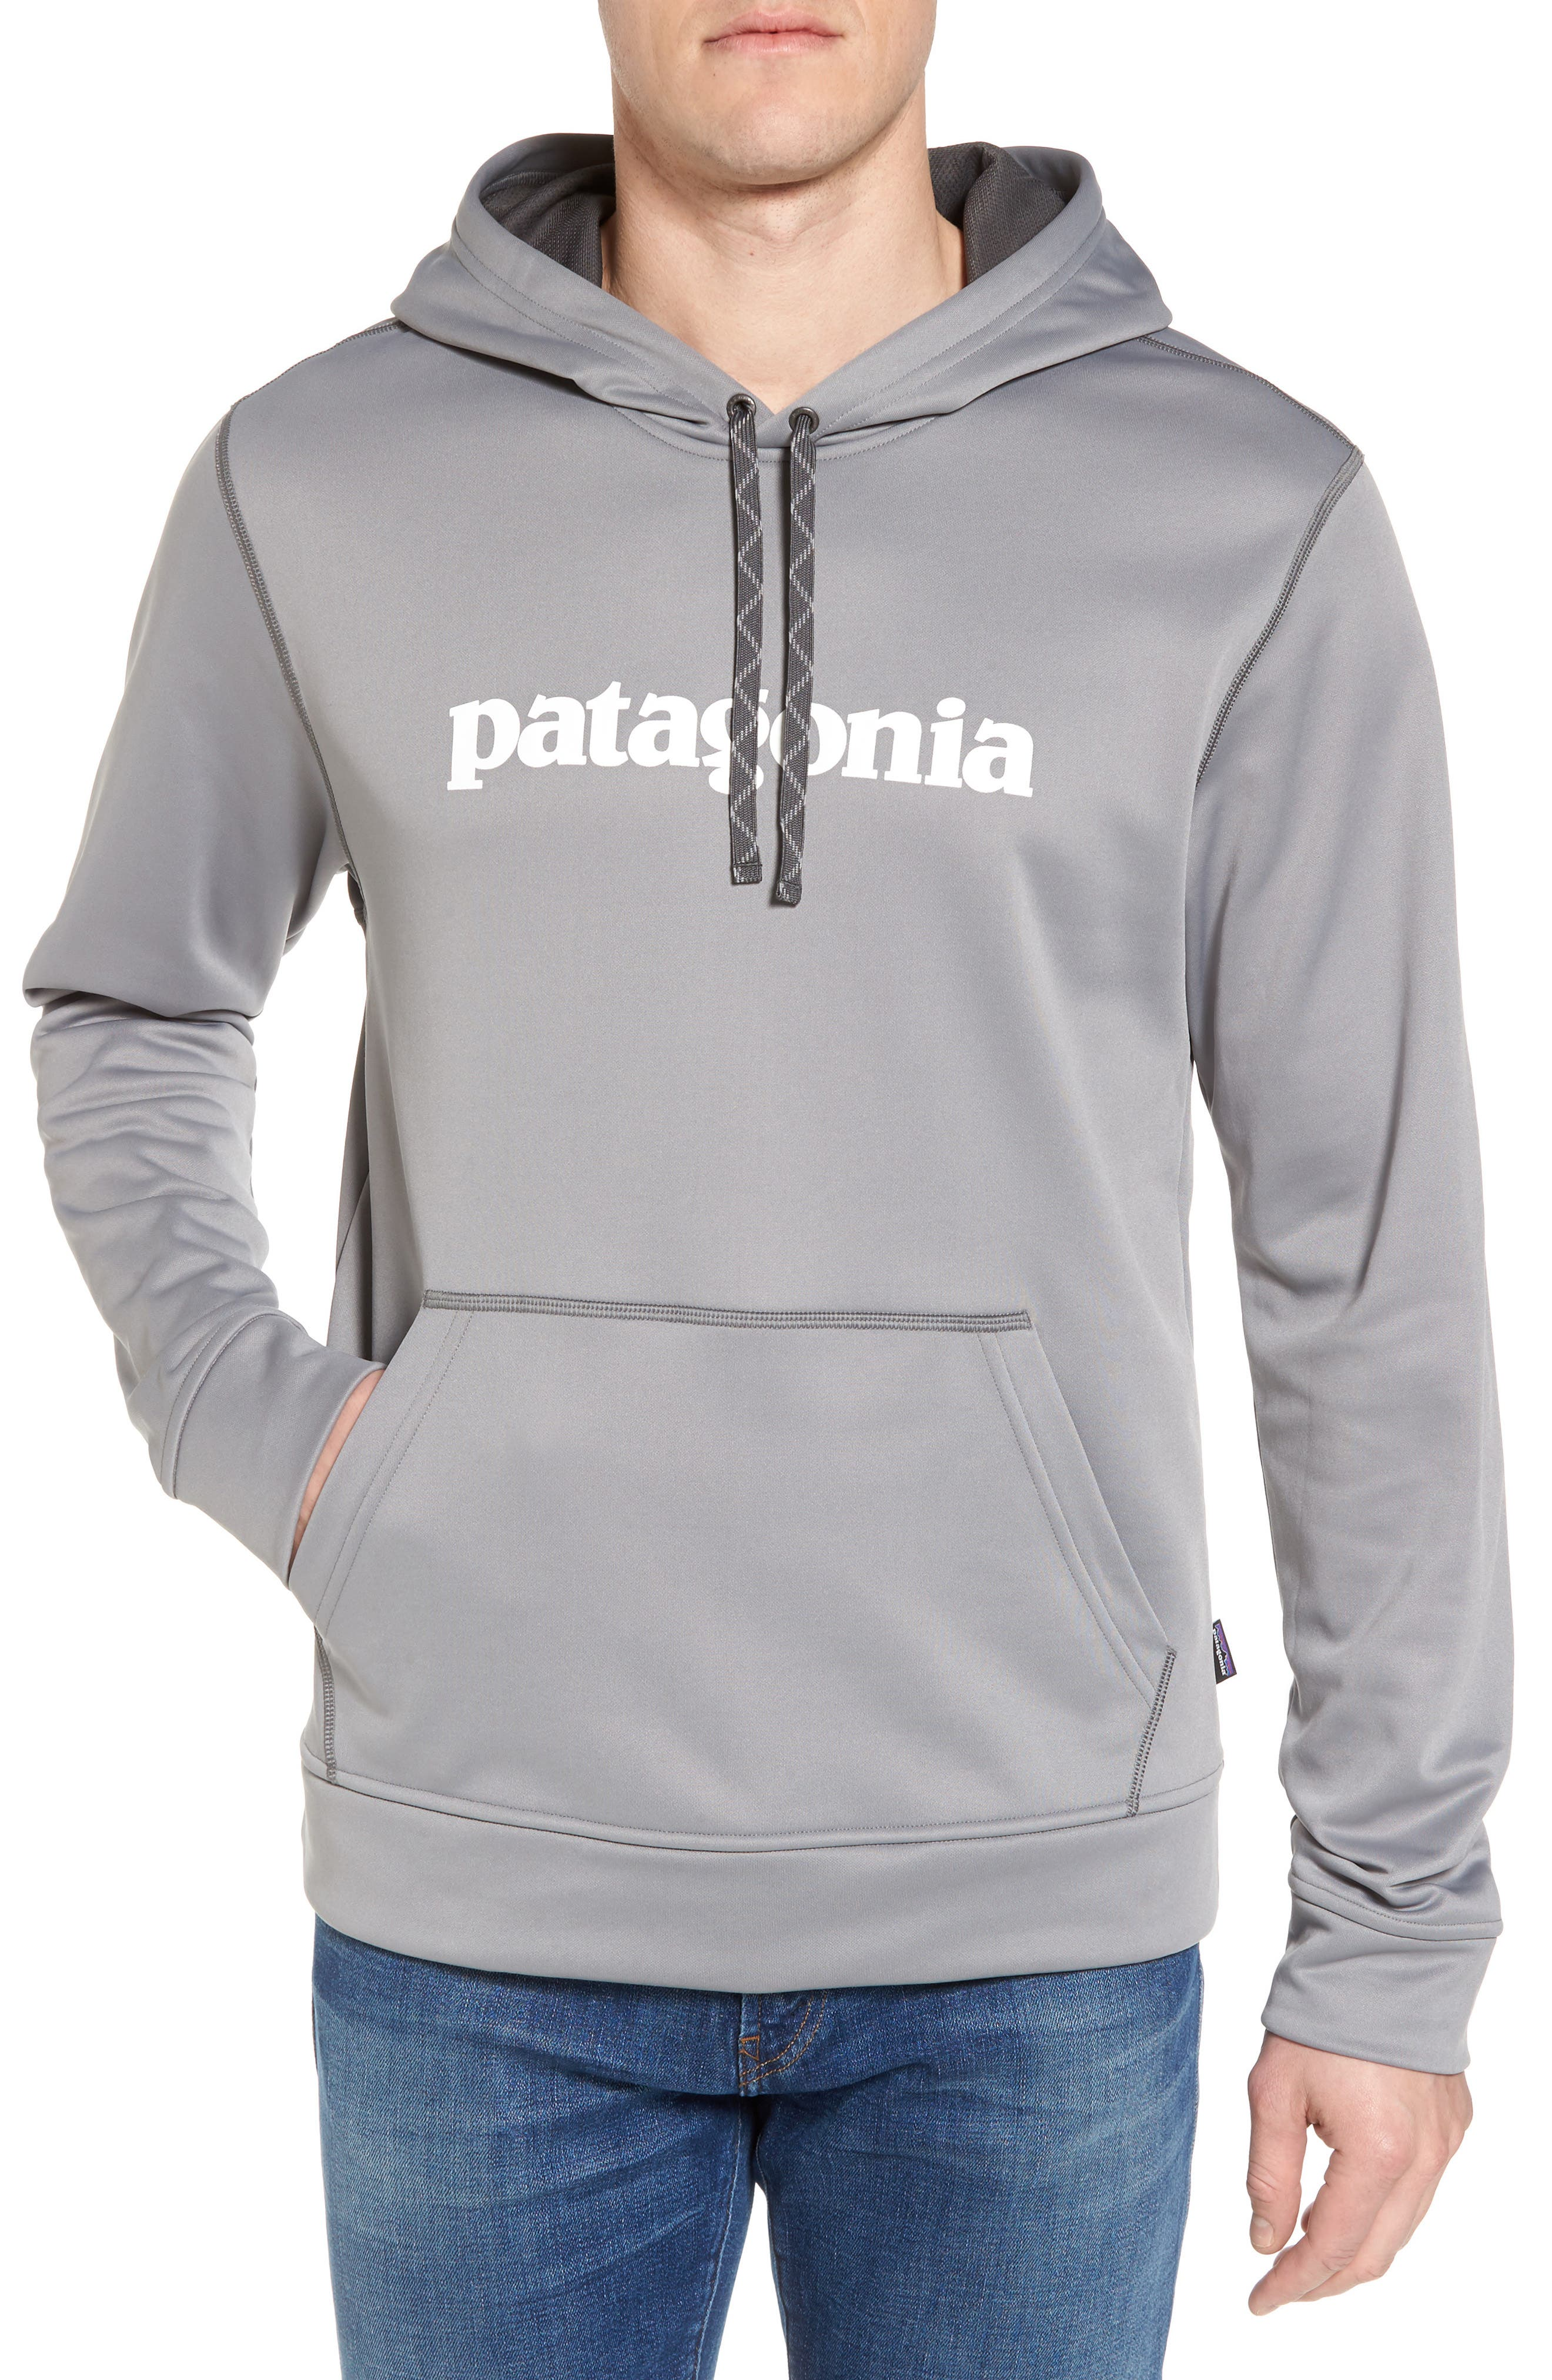 Polycycle Hoodie,                         Main,                         color, 020